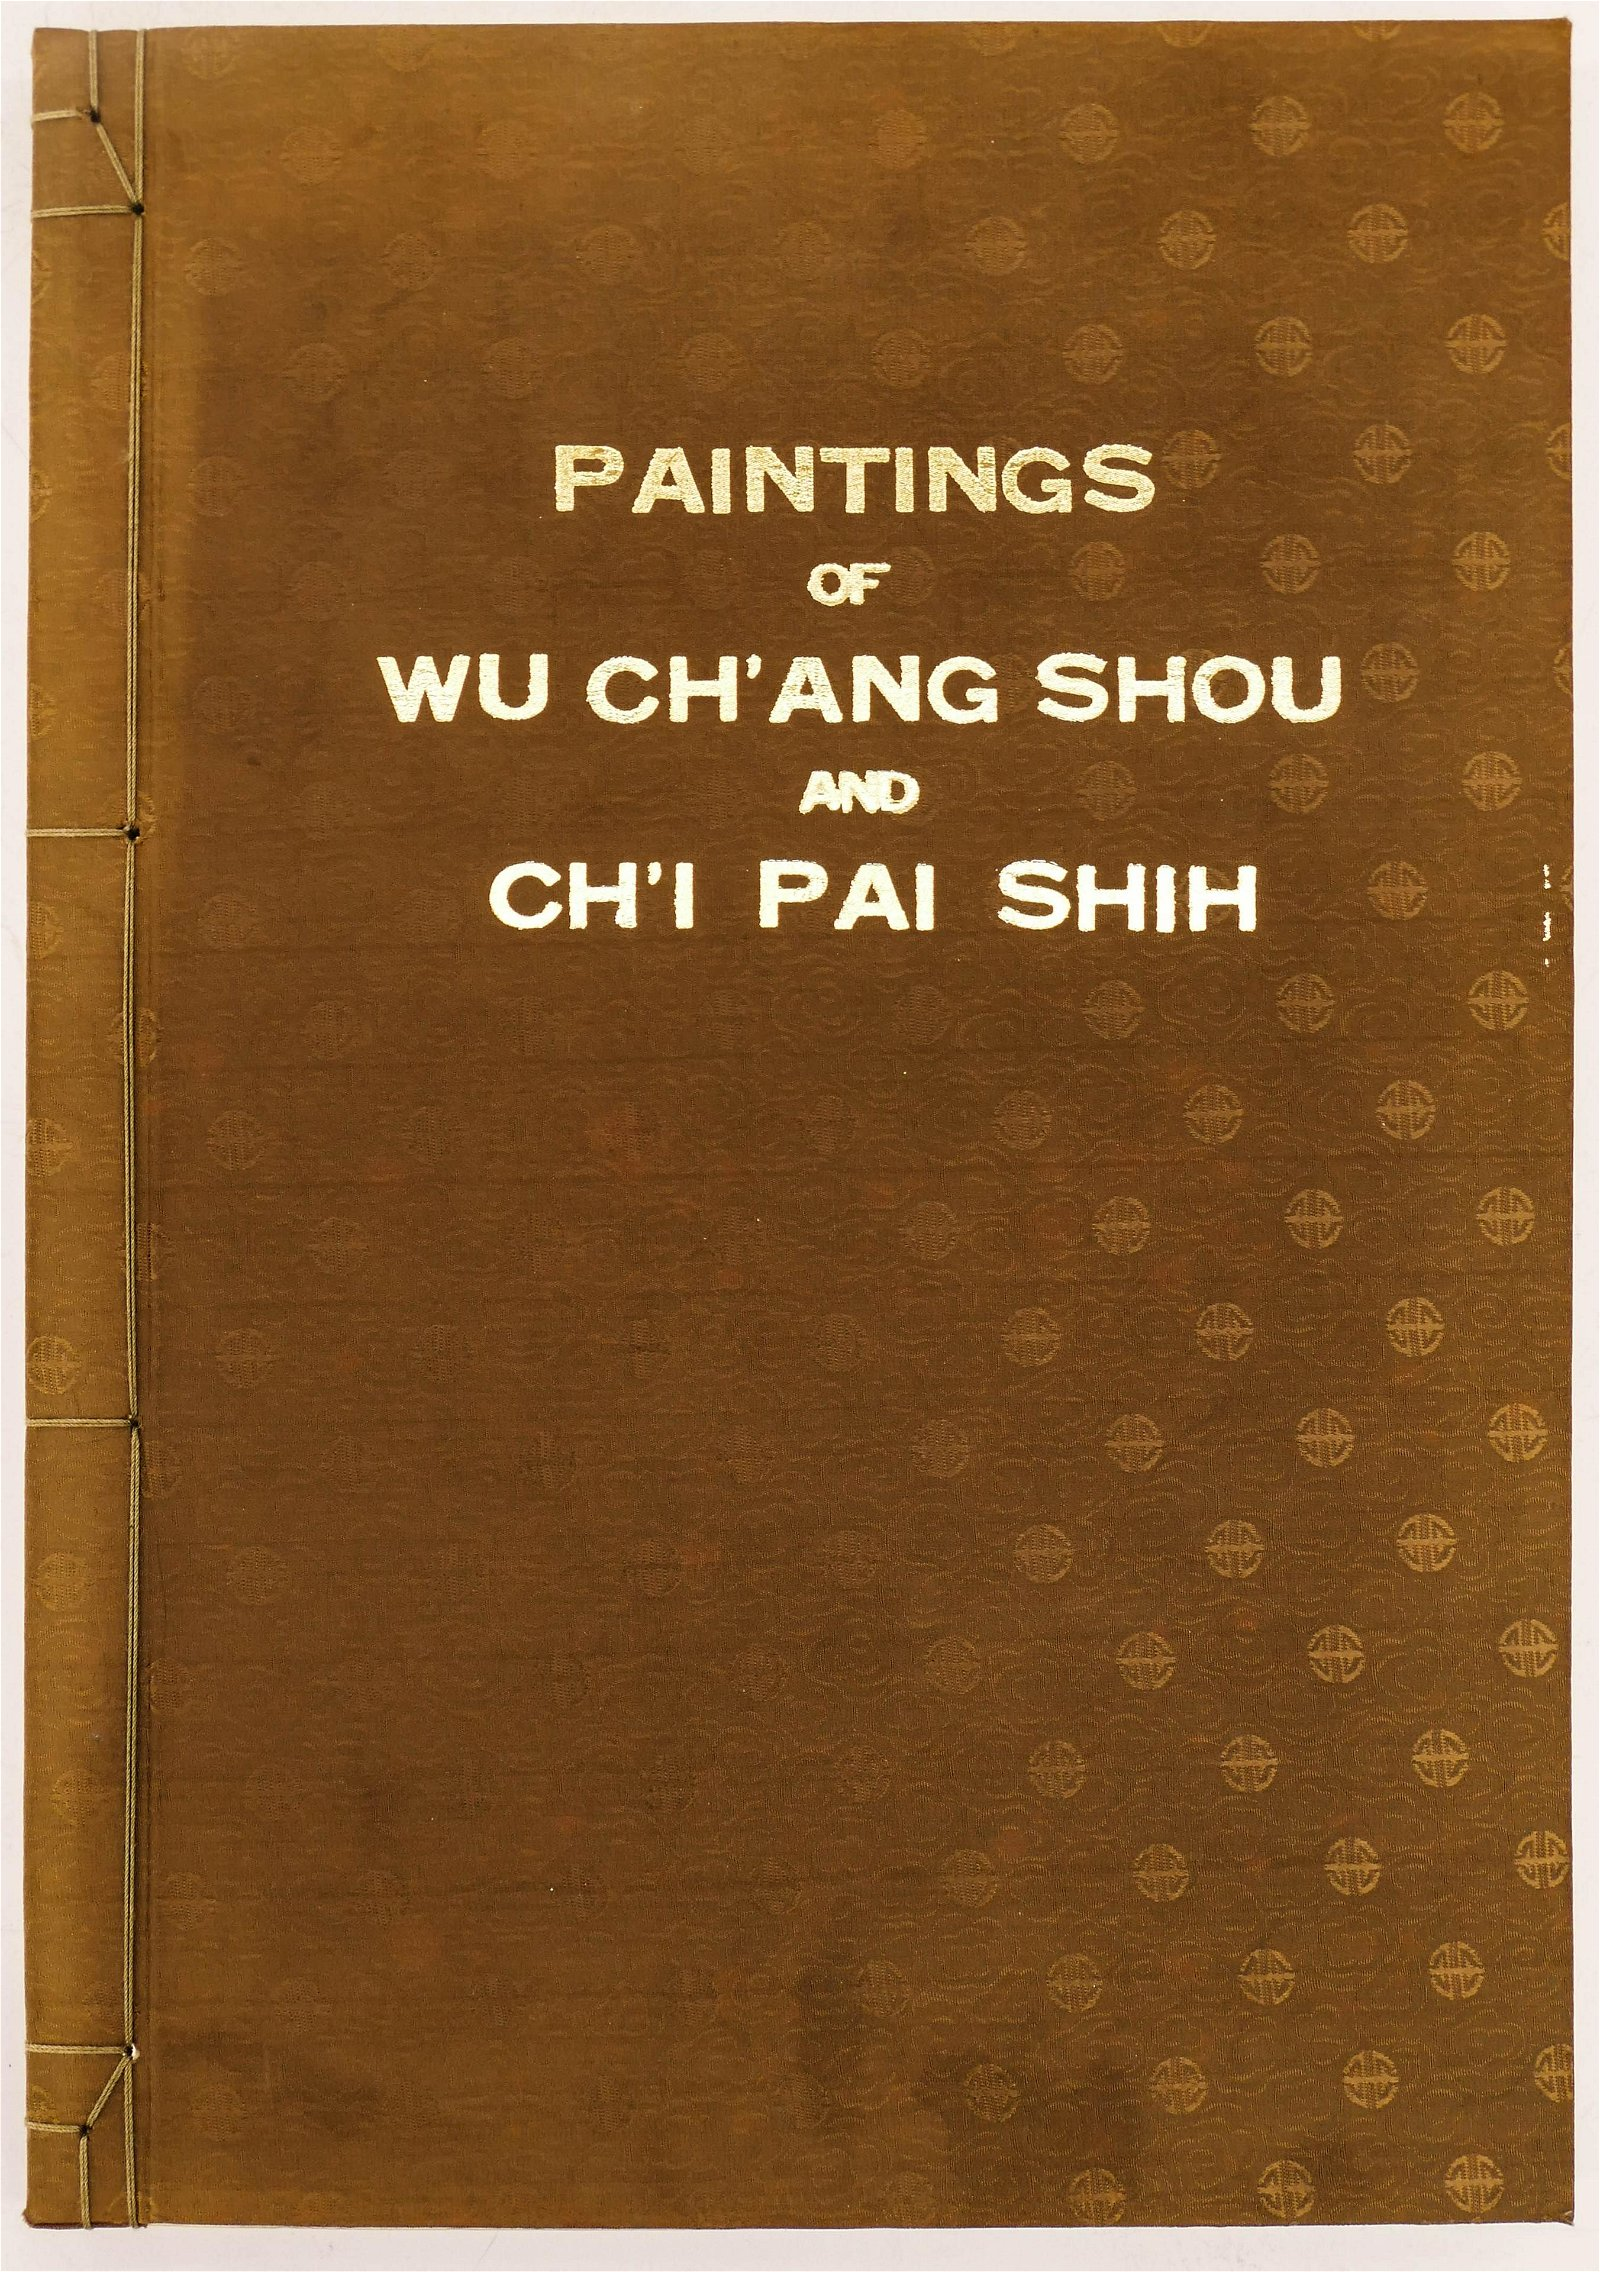 Chinese Paintings of Wu Ch'ang Shou and Ch'i Pai Shih